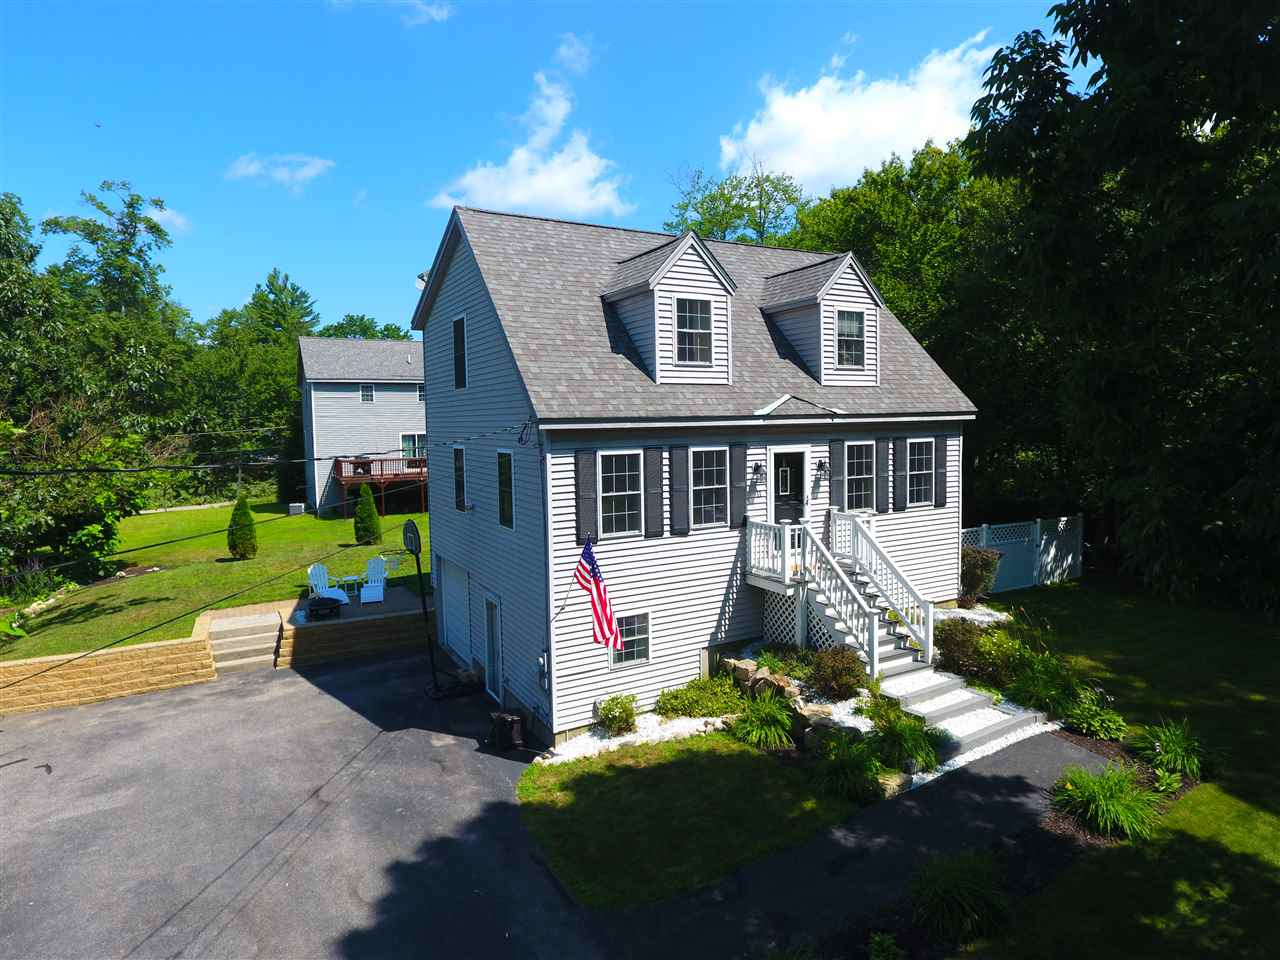 MLS 4768392: 11 Carter Road, Merrimack NH